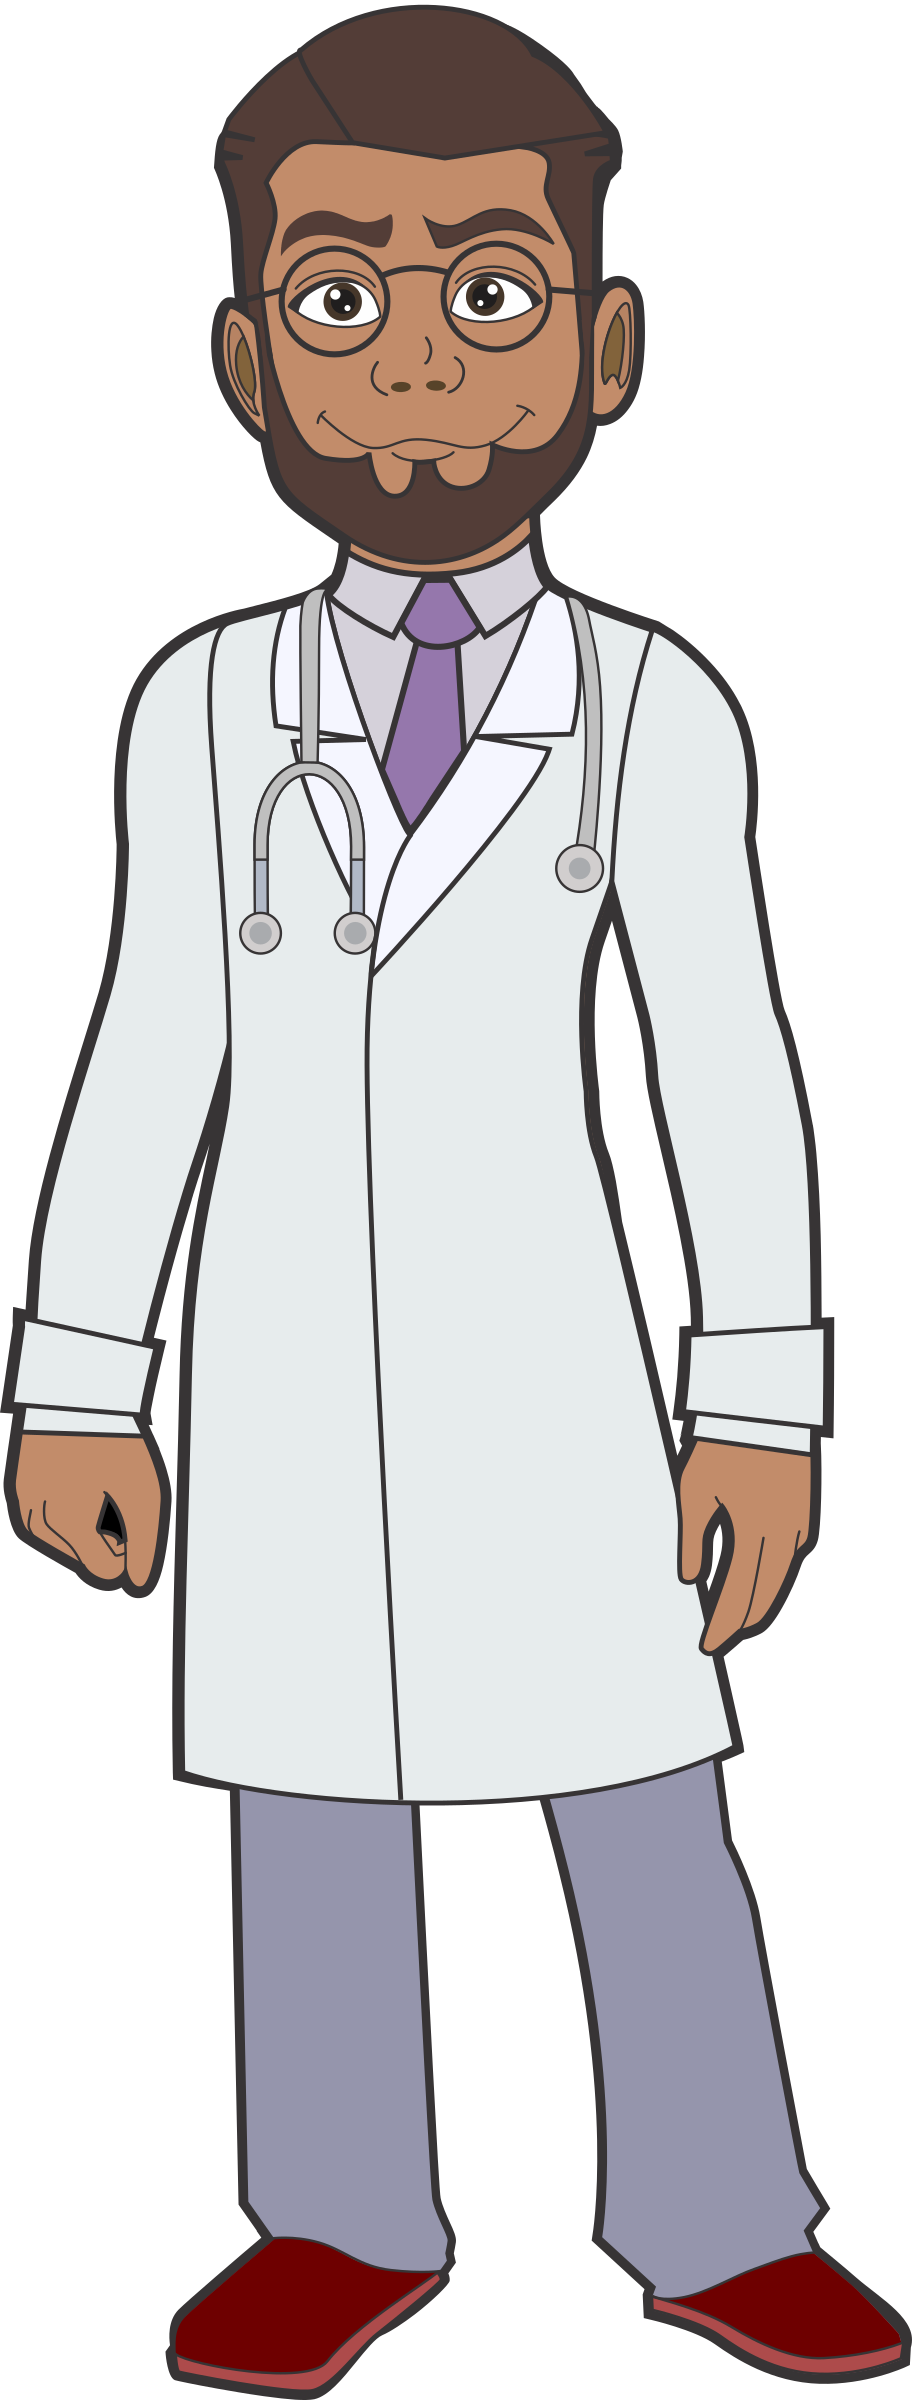 African big image png. Doctor clipart robe